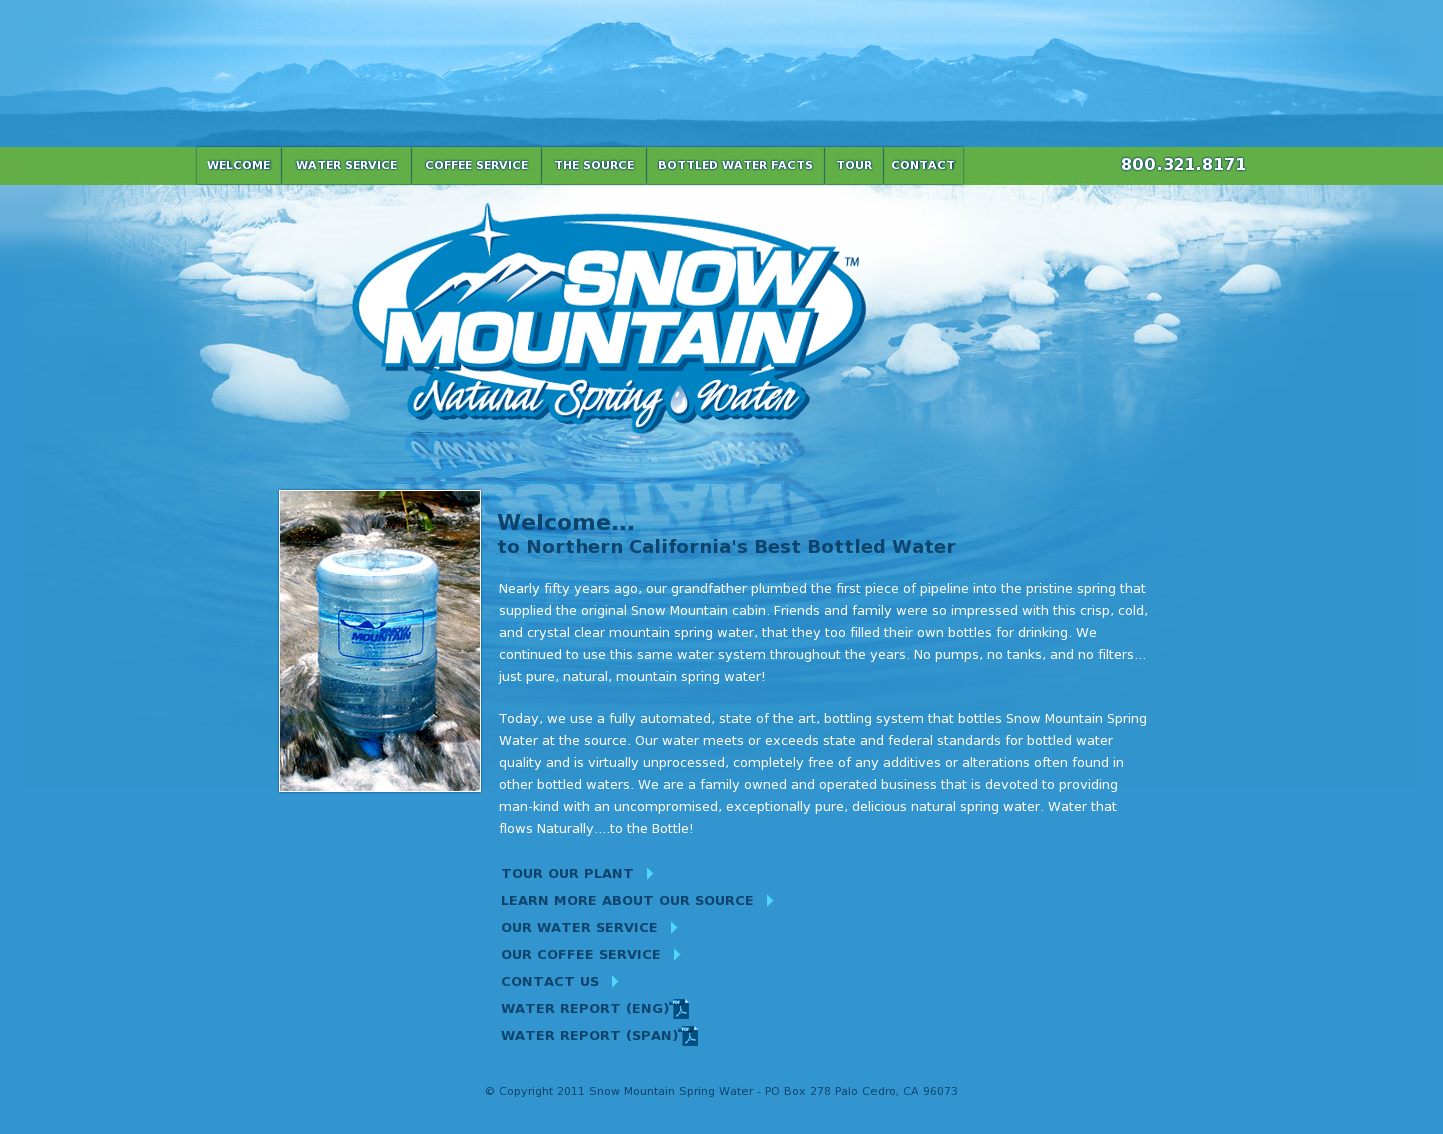 Snow Mountain Spring Water Competitors, Revenue and Employees